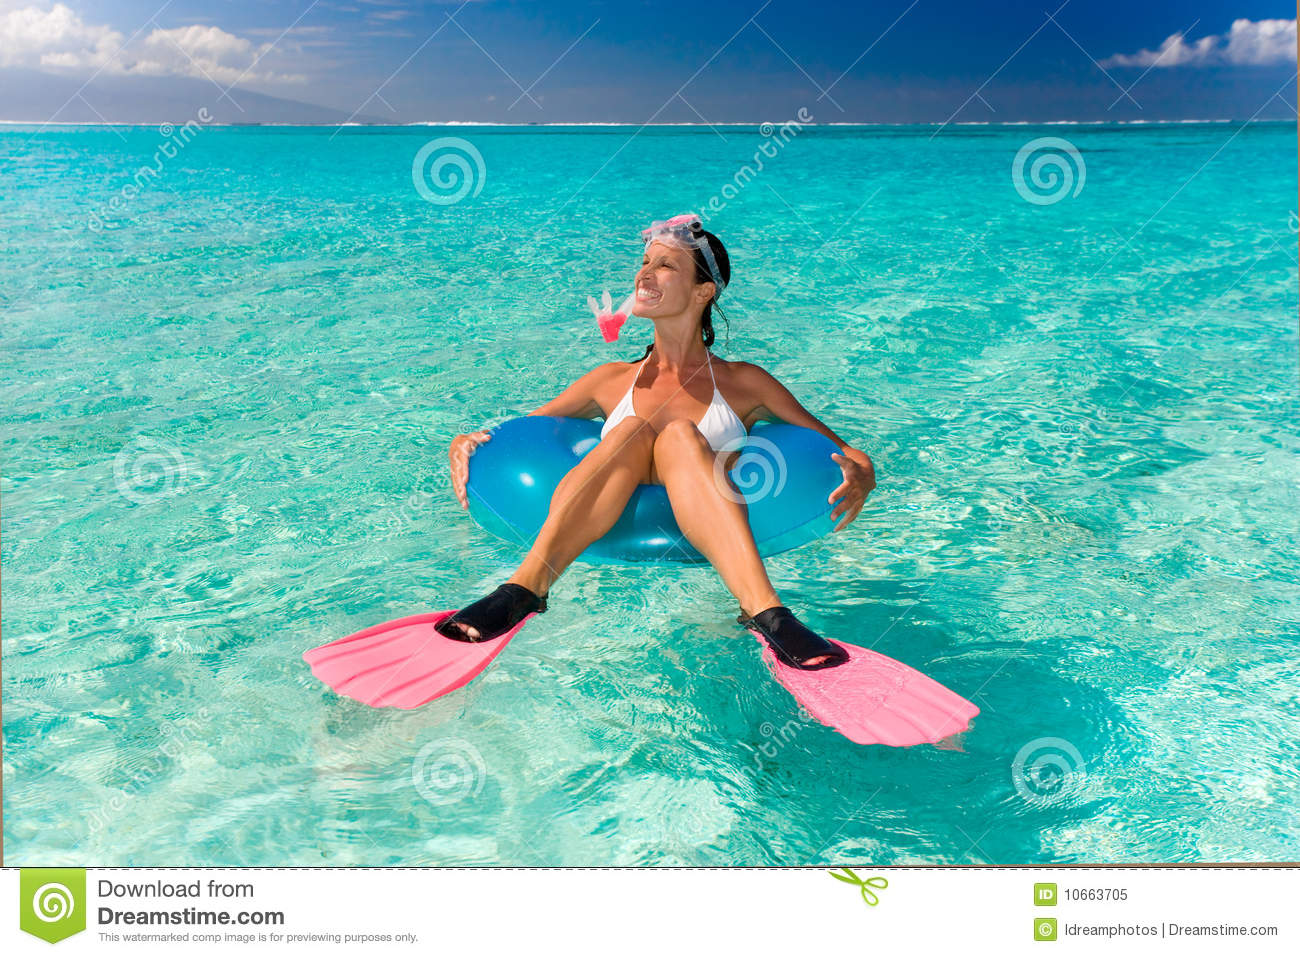 Royalty Free Stock Photo Funny Snorkel Woman